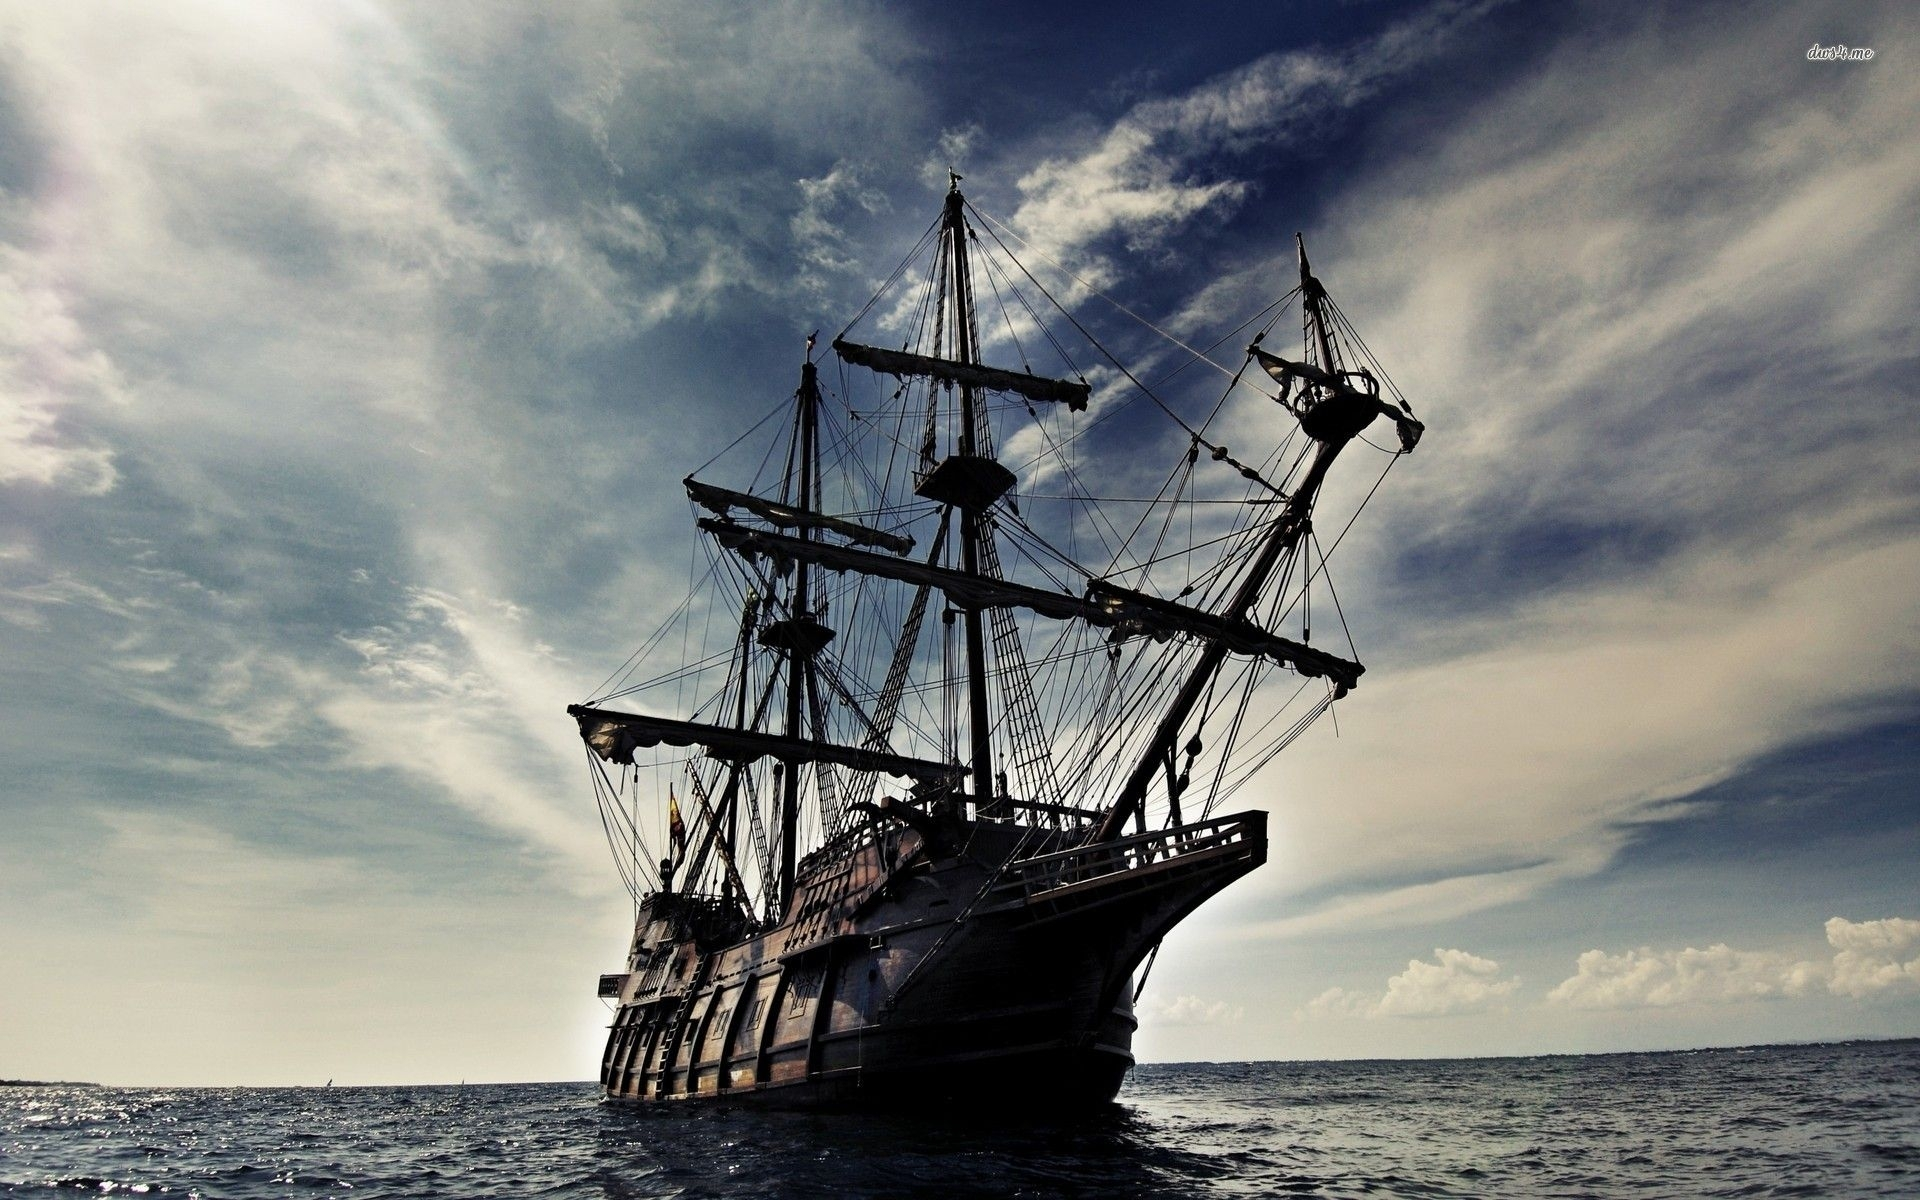 pirates of the caribbean images the black pearl hd wallpaper and